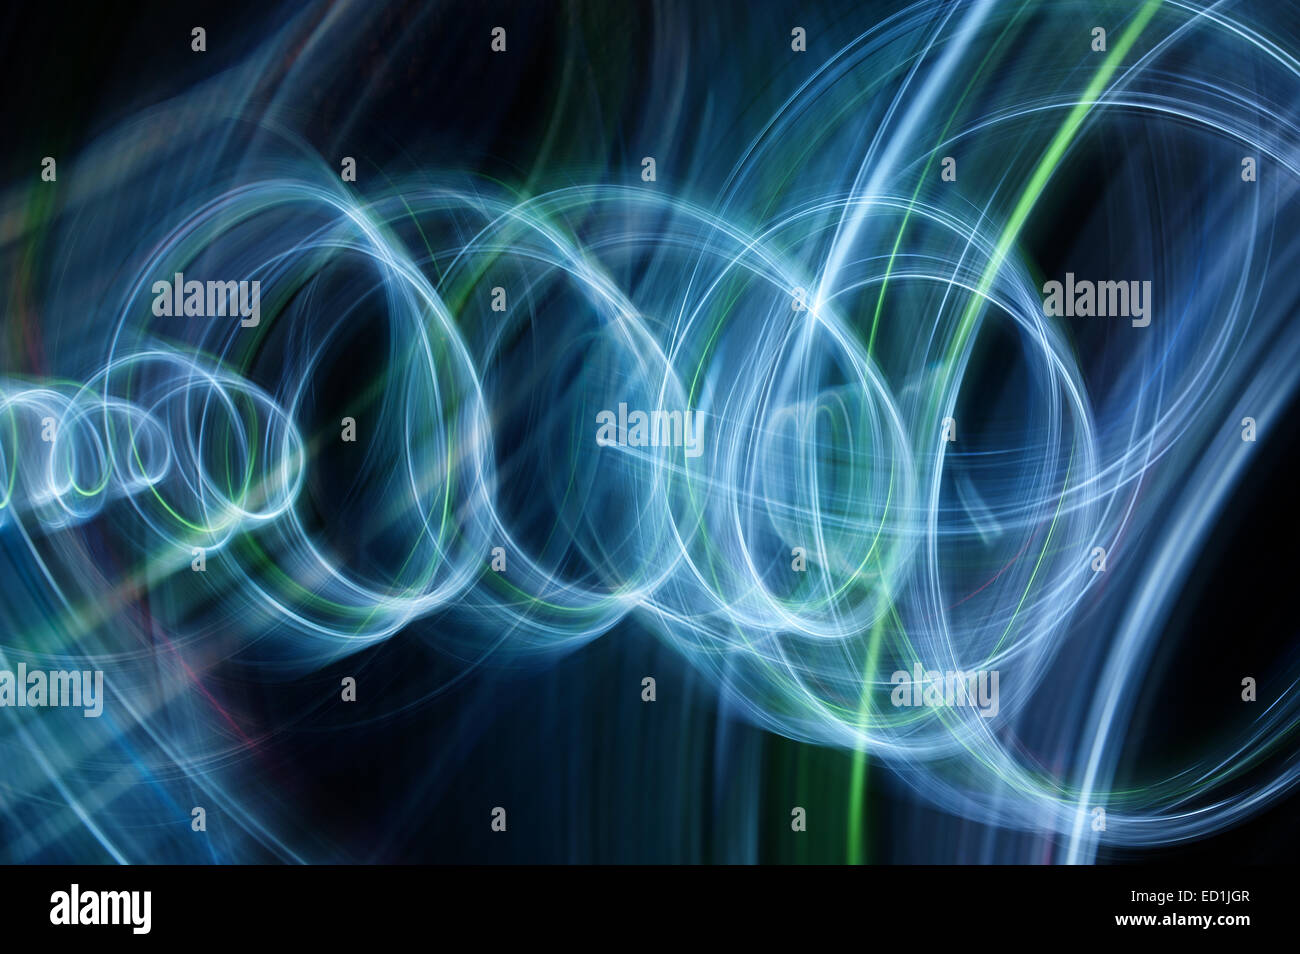 swirling spinning motion and trails traces of moving lights creating patterns vortice - Stock Image